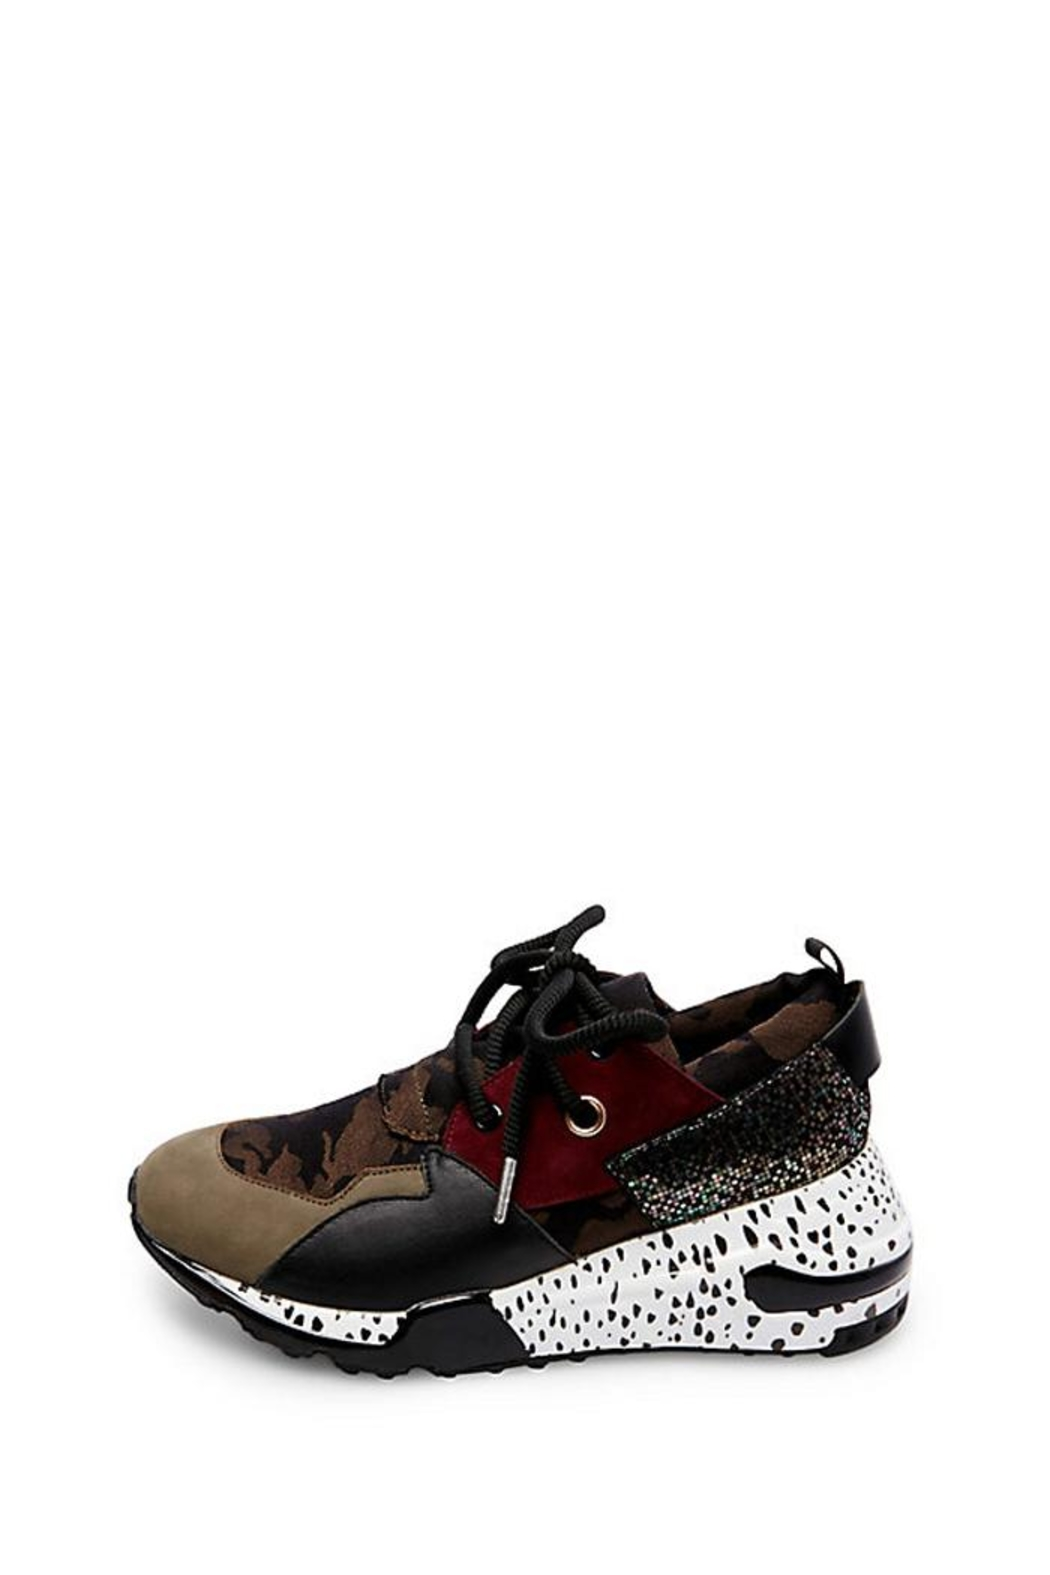 5836b72b007 Steve Madden Cliff Sneaker from New York by Luna — Shoptiques